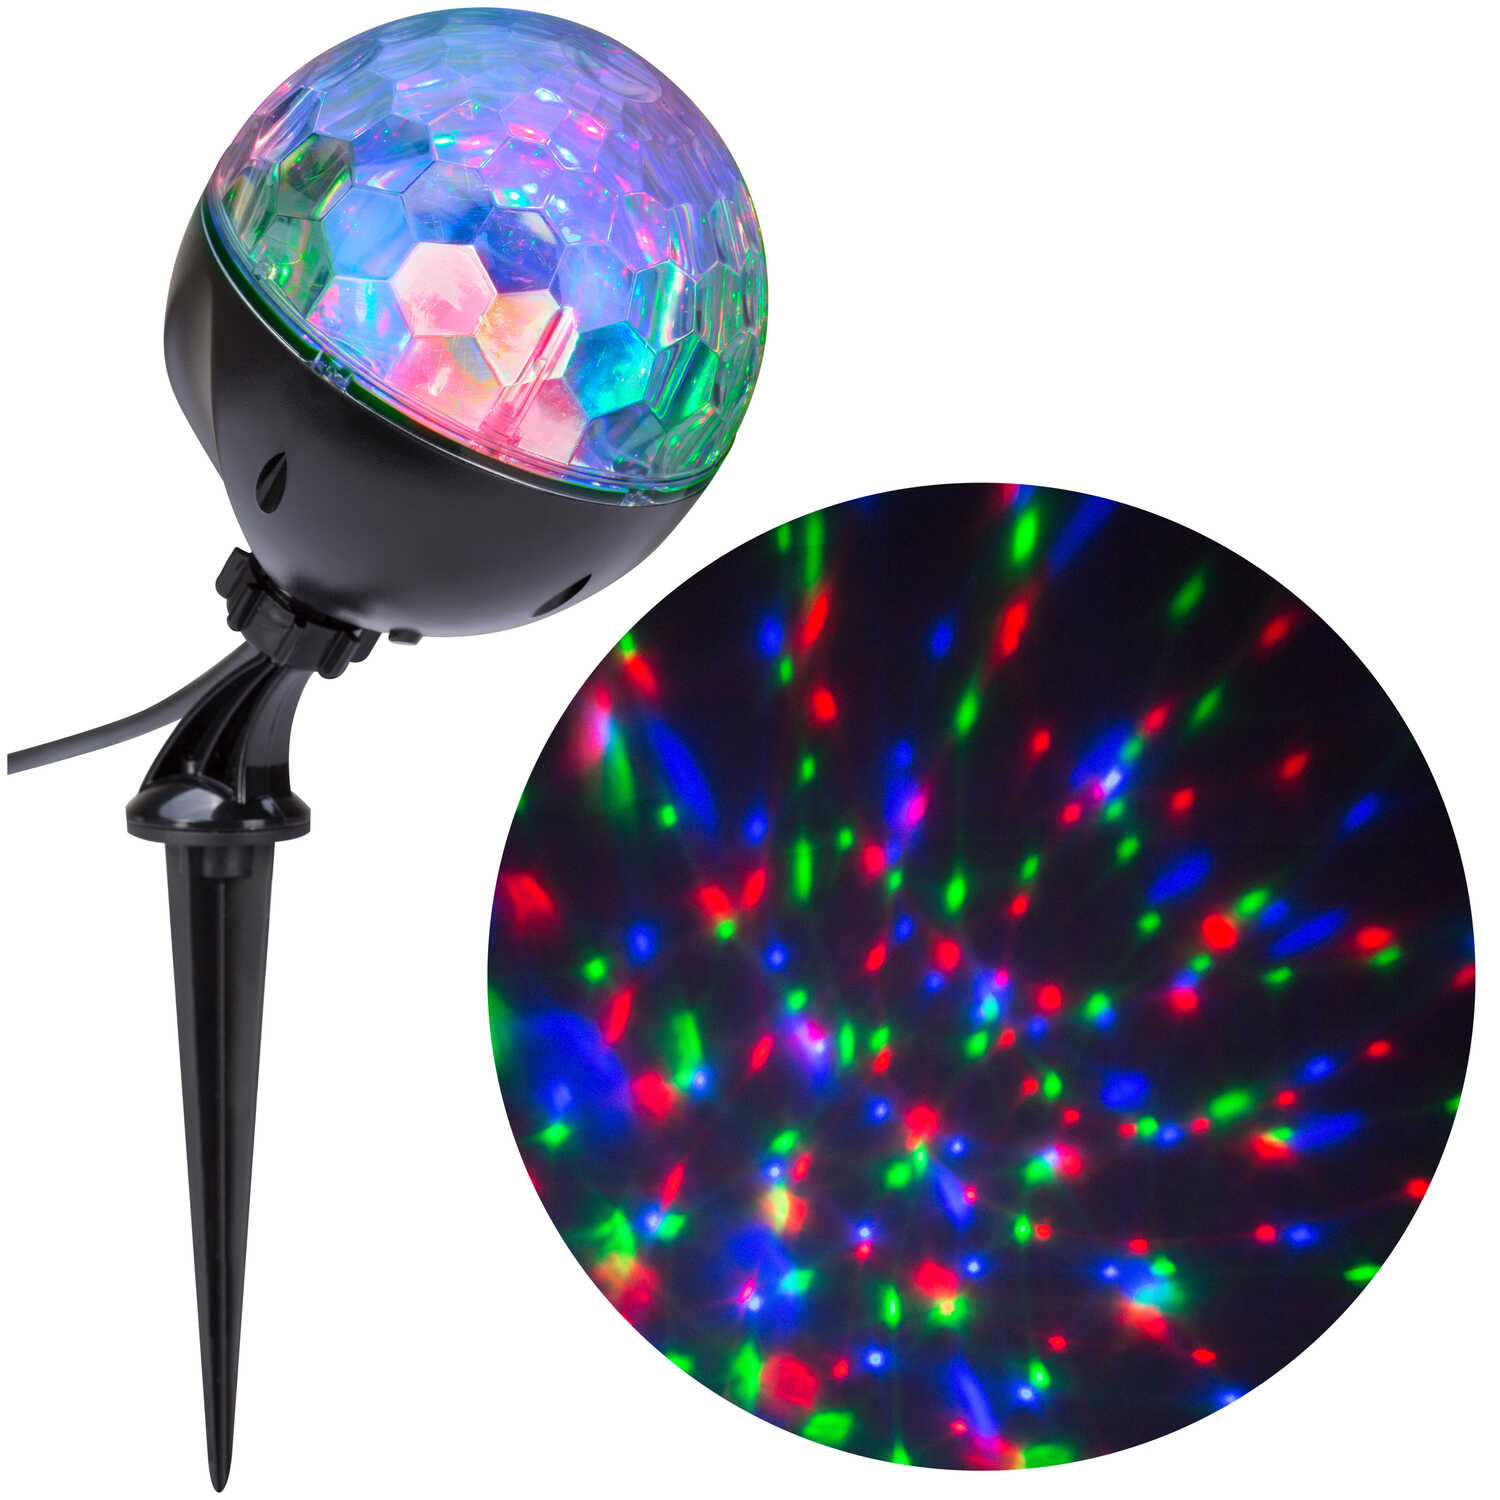 Gemmy  LED  Confetti  Light Show Projector  Multicolored